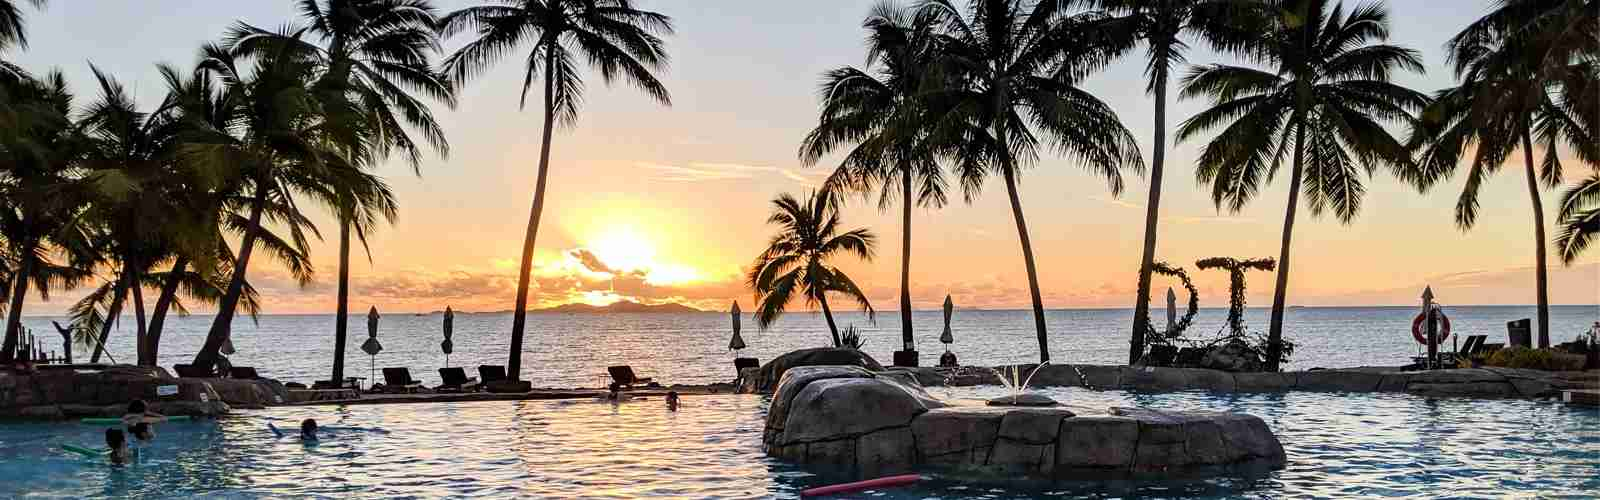 Hilton Doubletree Fiji pool sunset